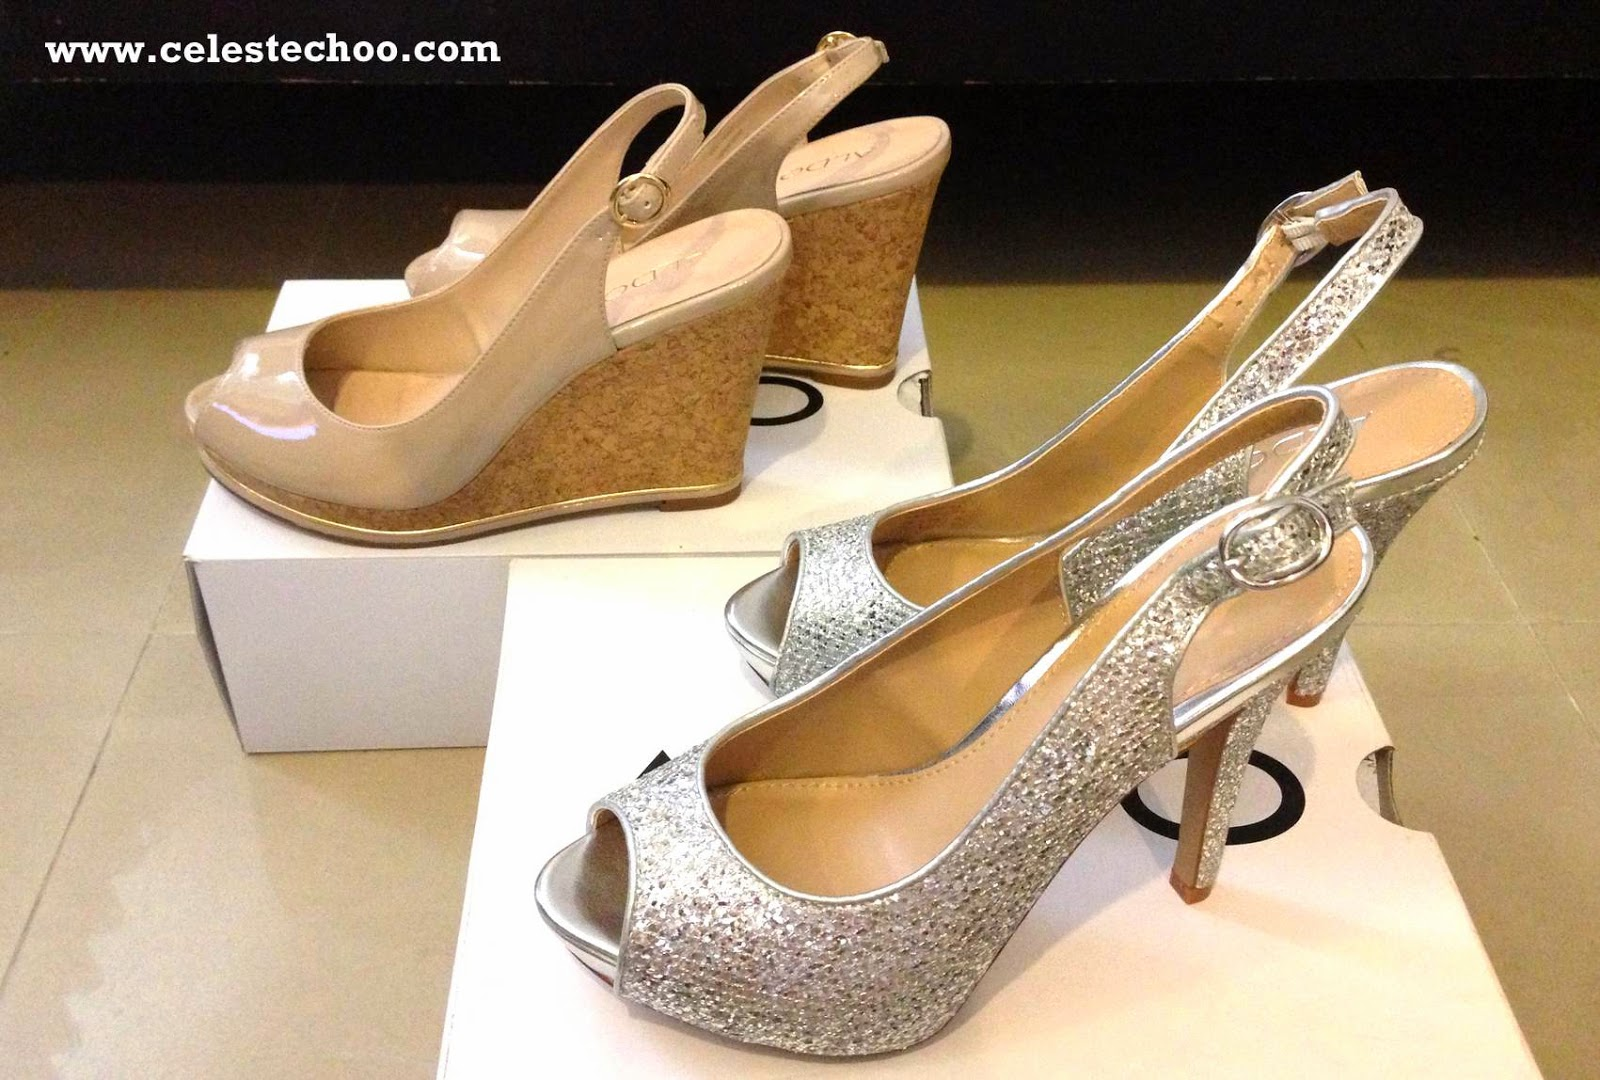 image-silver-and-beige-shoes-with-boxes